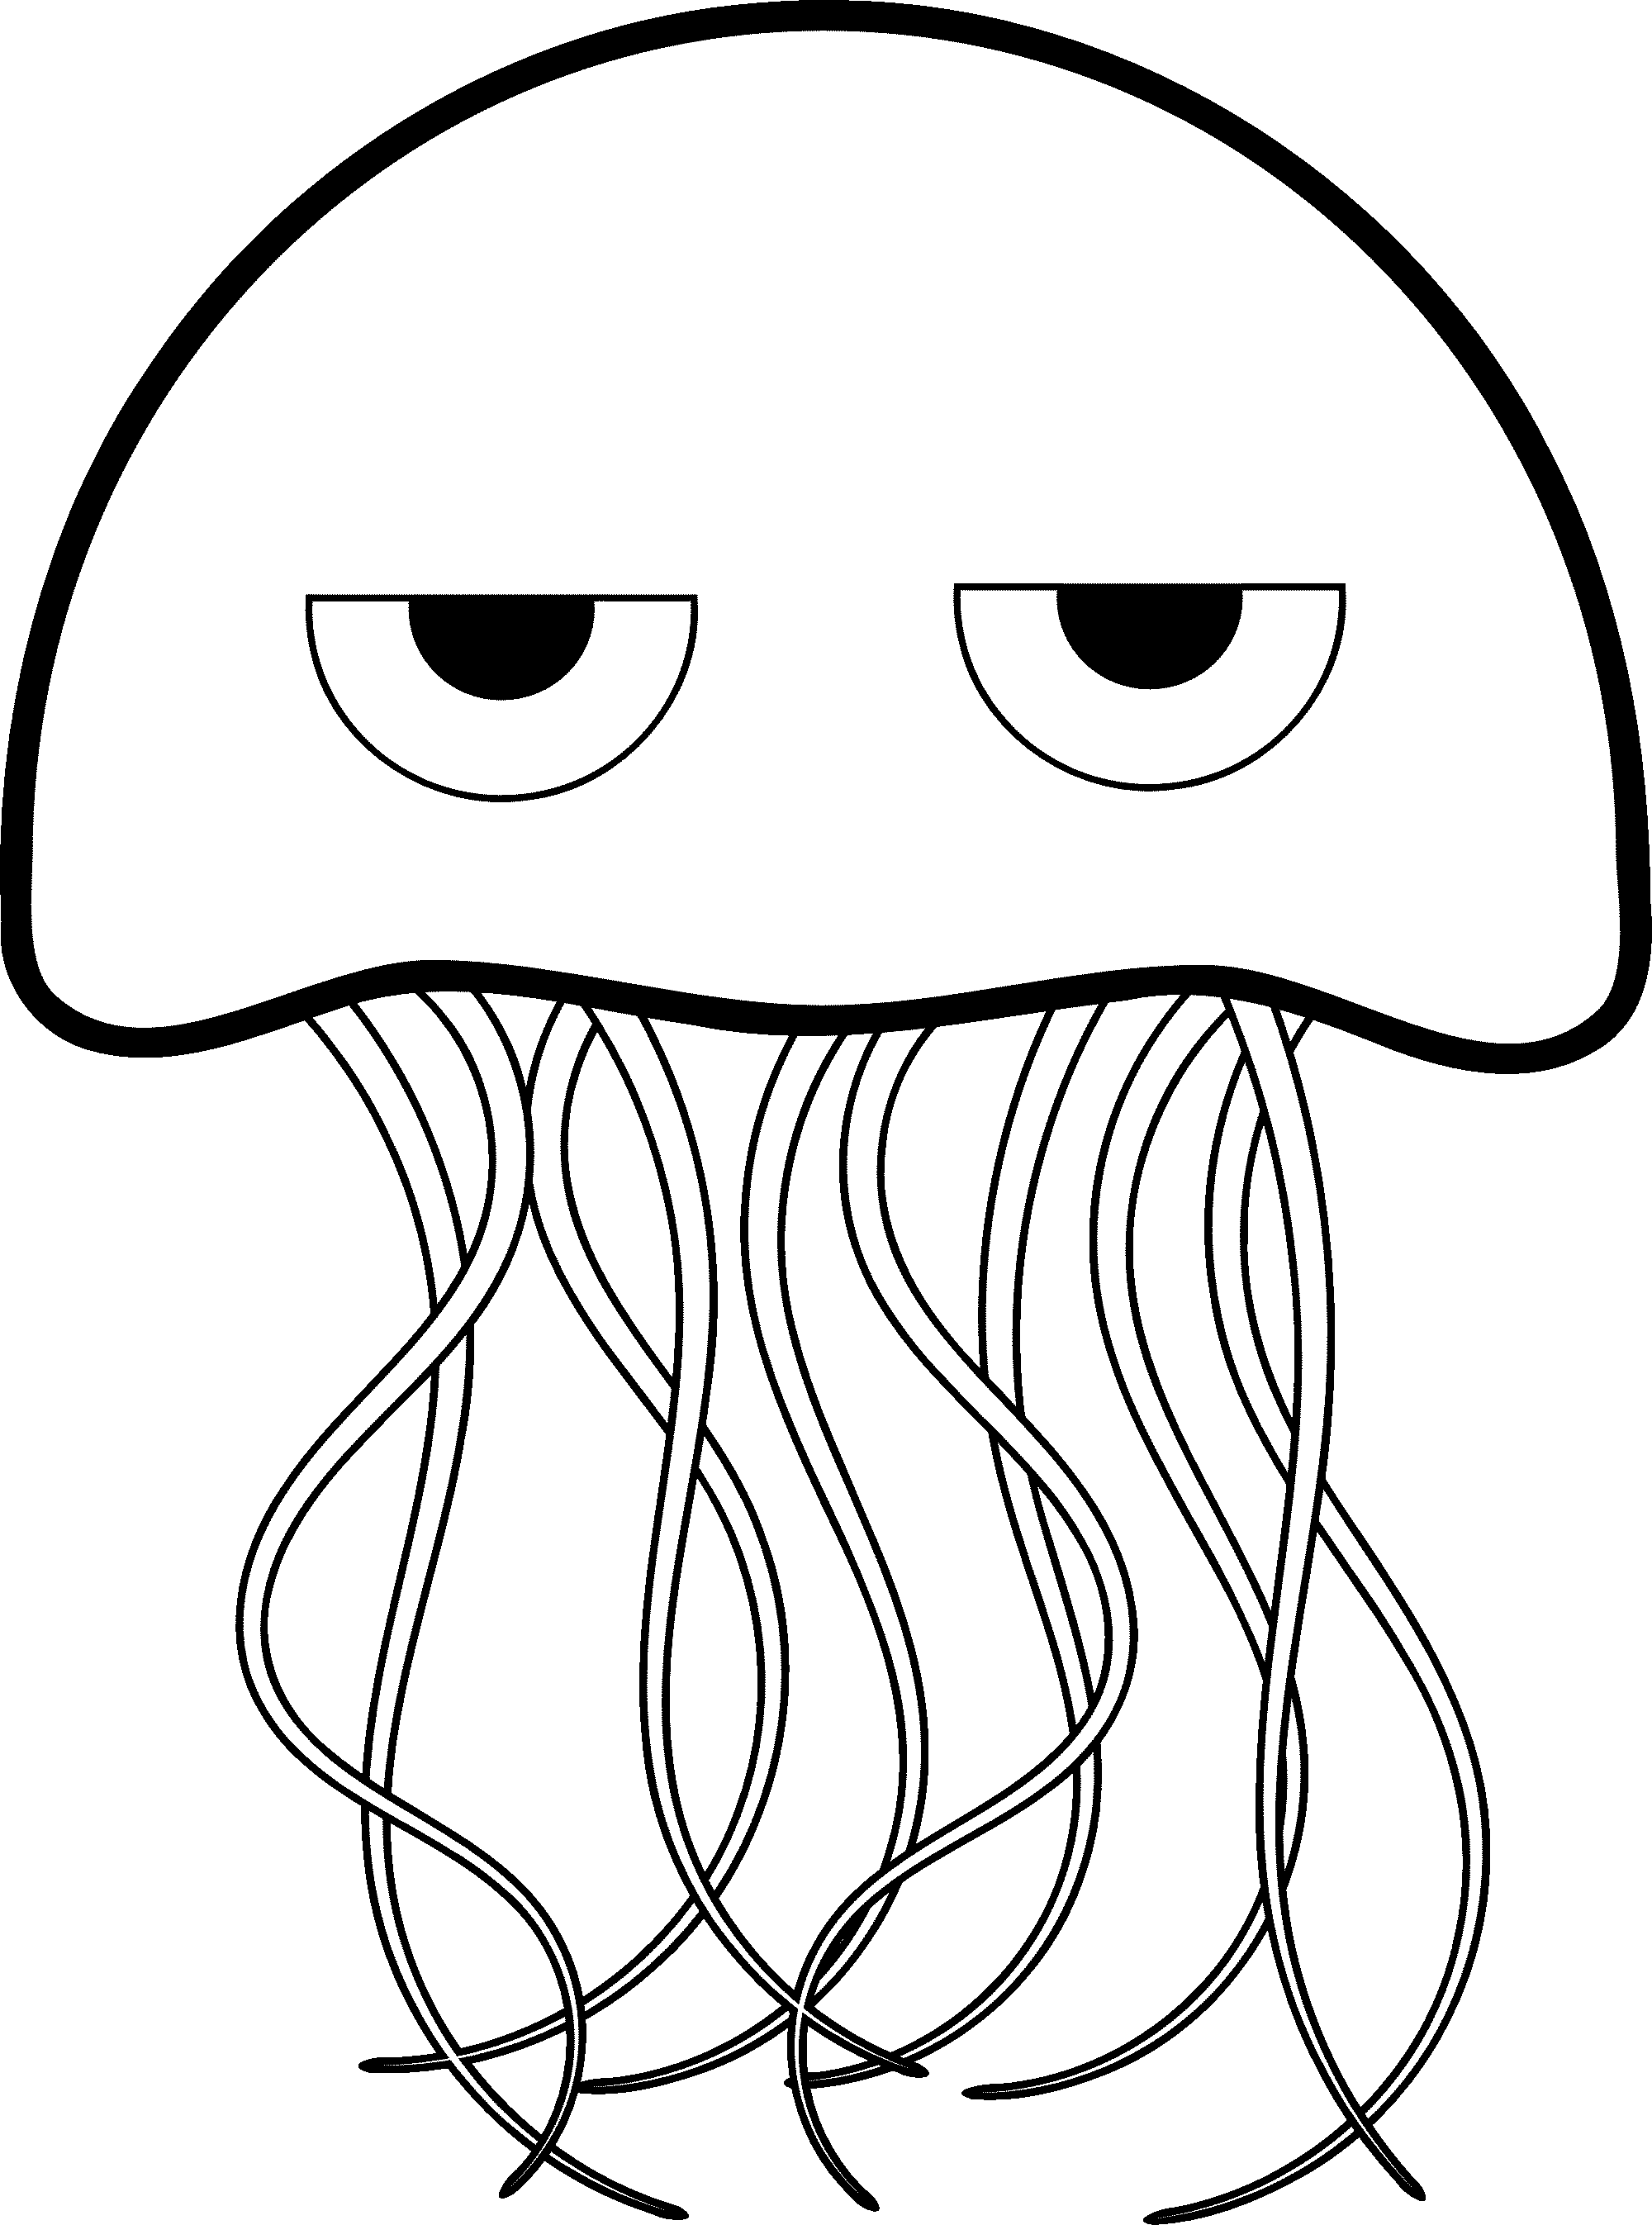 Lead drawing cute. Jelly fish at getdrawings